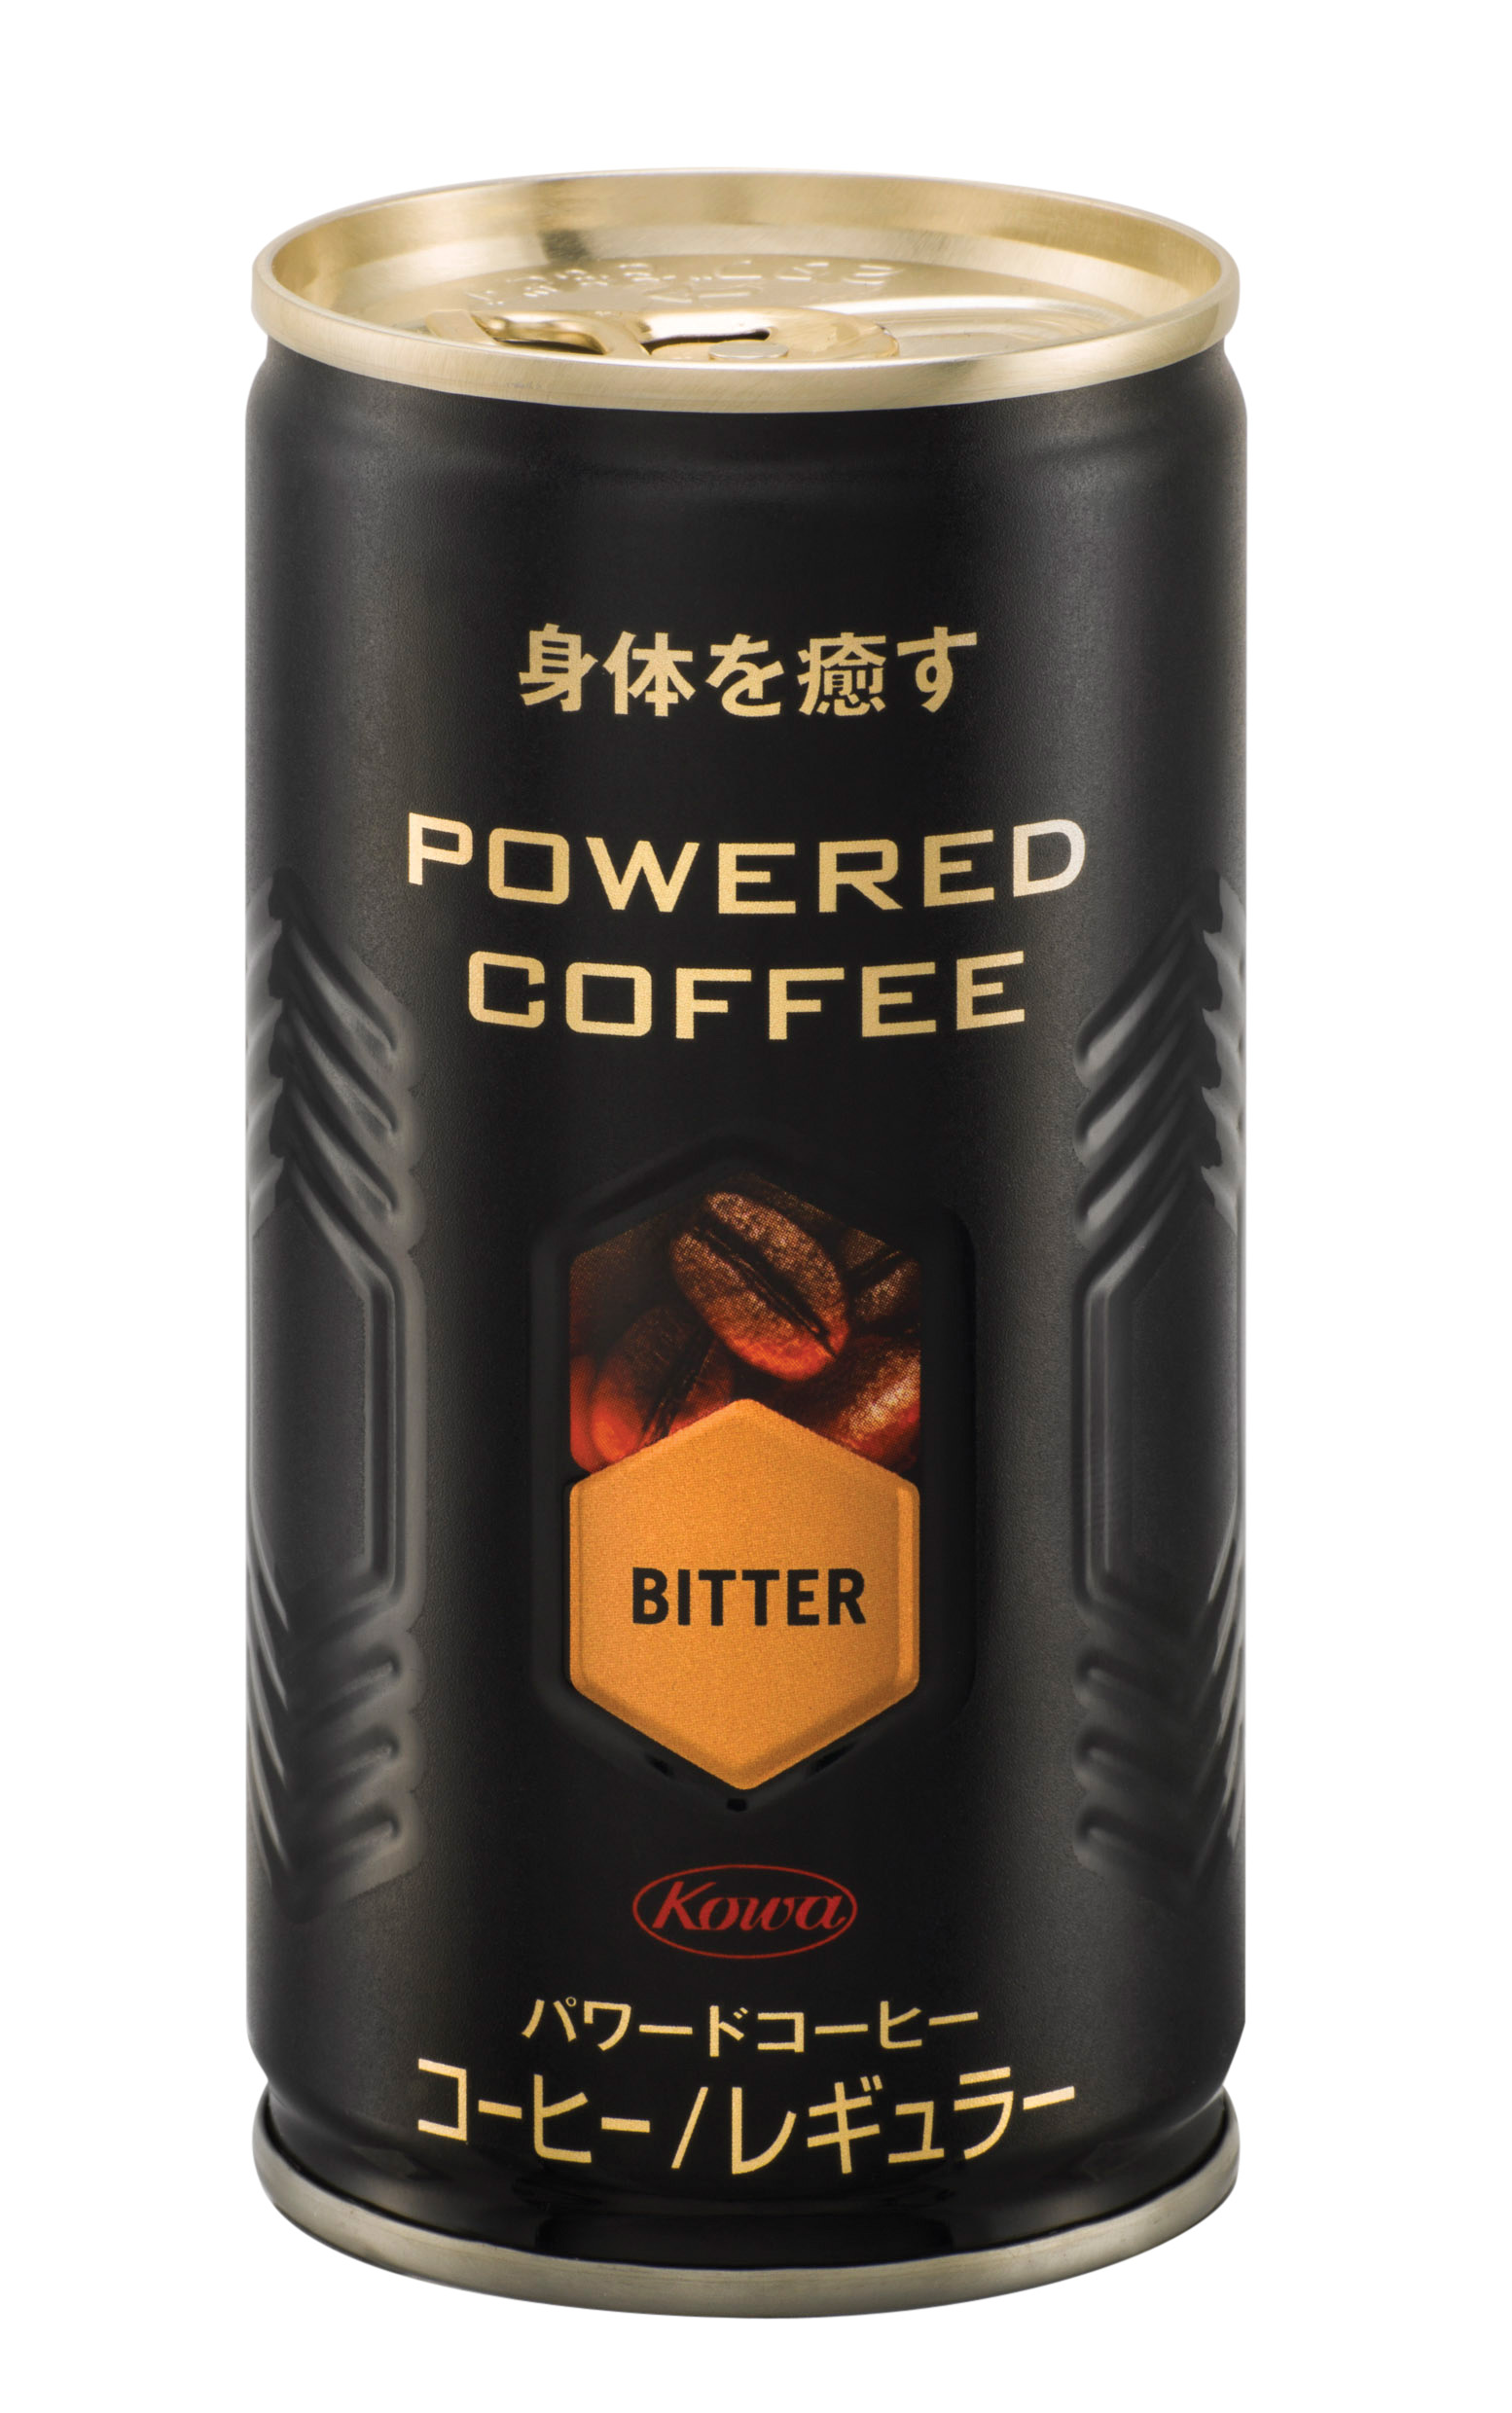 Japan 39 s daiwa wins can of the year award canadian packaging - What are coffee cans made of ...